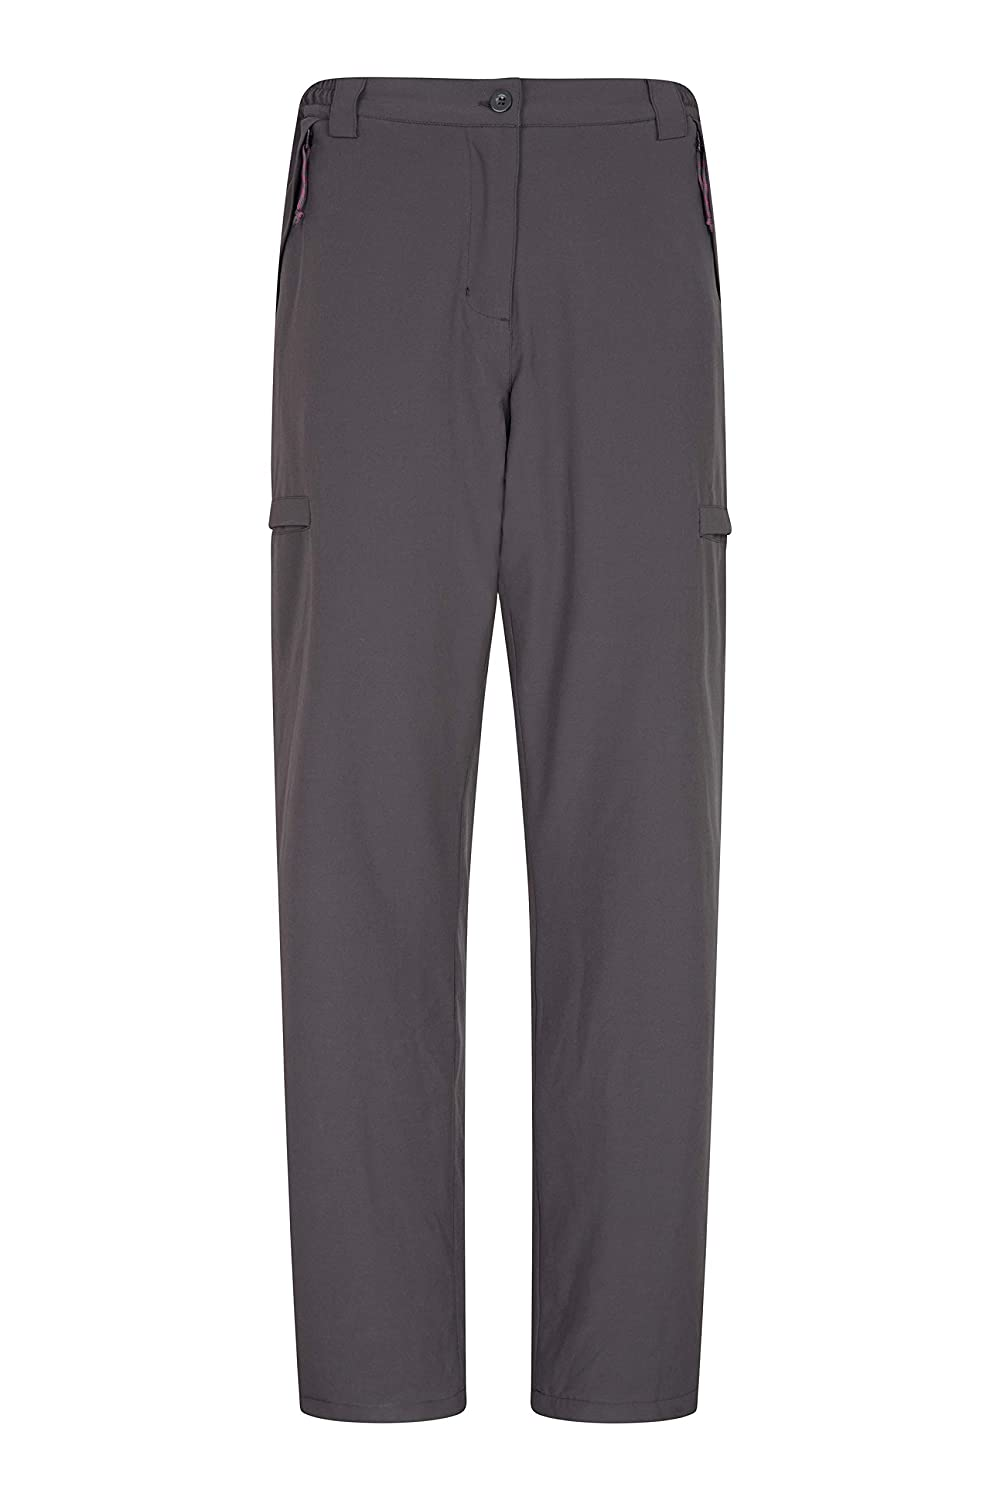 Mountain Warehouse Arctic Thermal Womens Trousers - Fleece Lined Winter Pants, Stretch, Many Pockets, Inner Waistband Ladies Bottoms, Warm Walking, Camping, Hiking